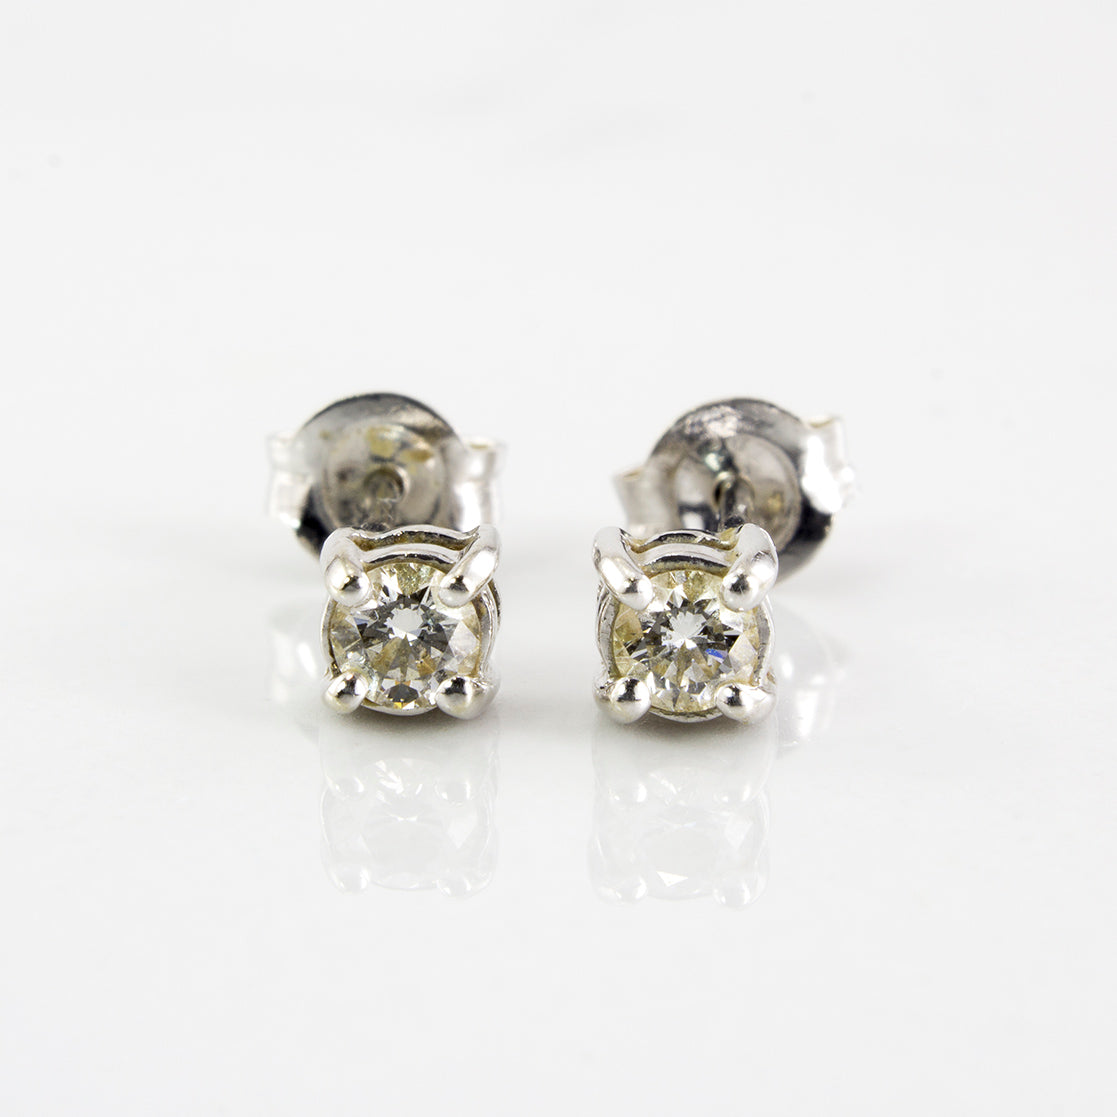 Diamond Stud Earrings | 0.20 ctw |